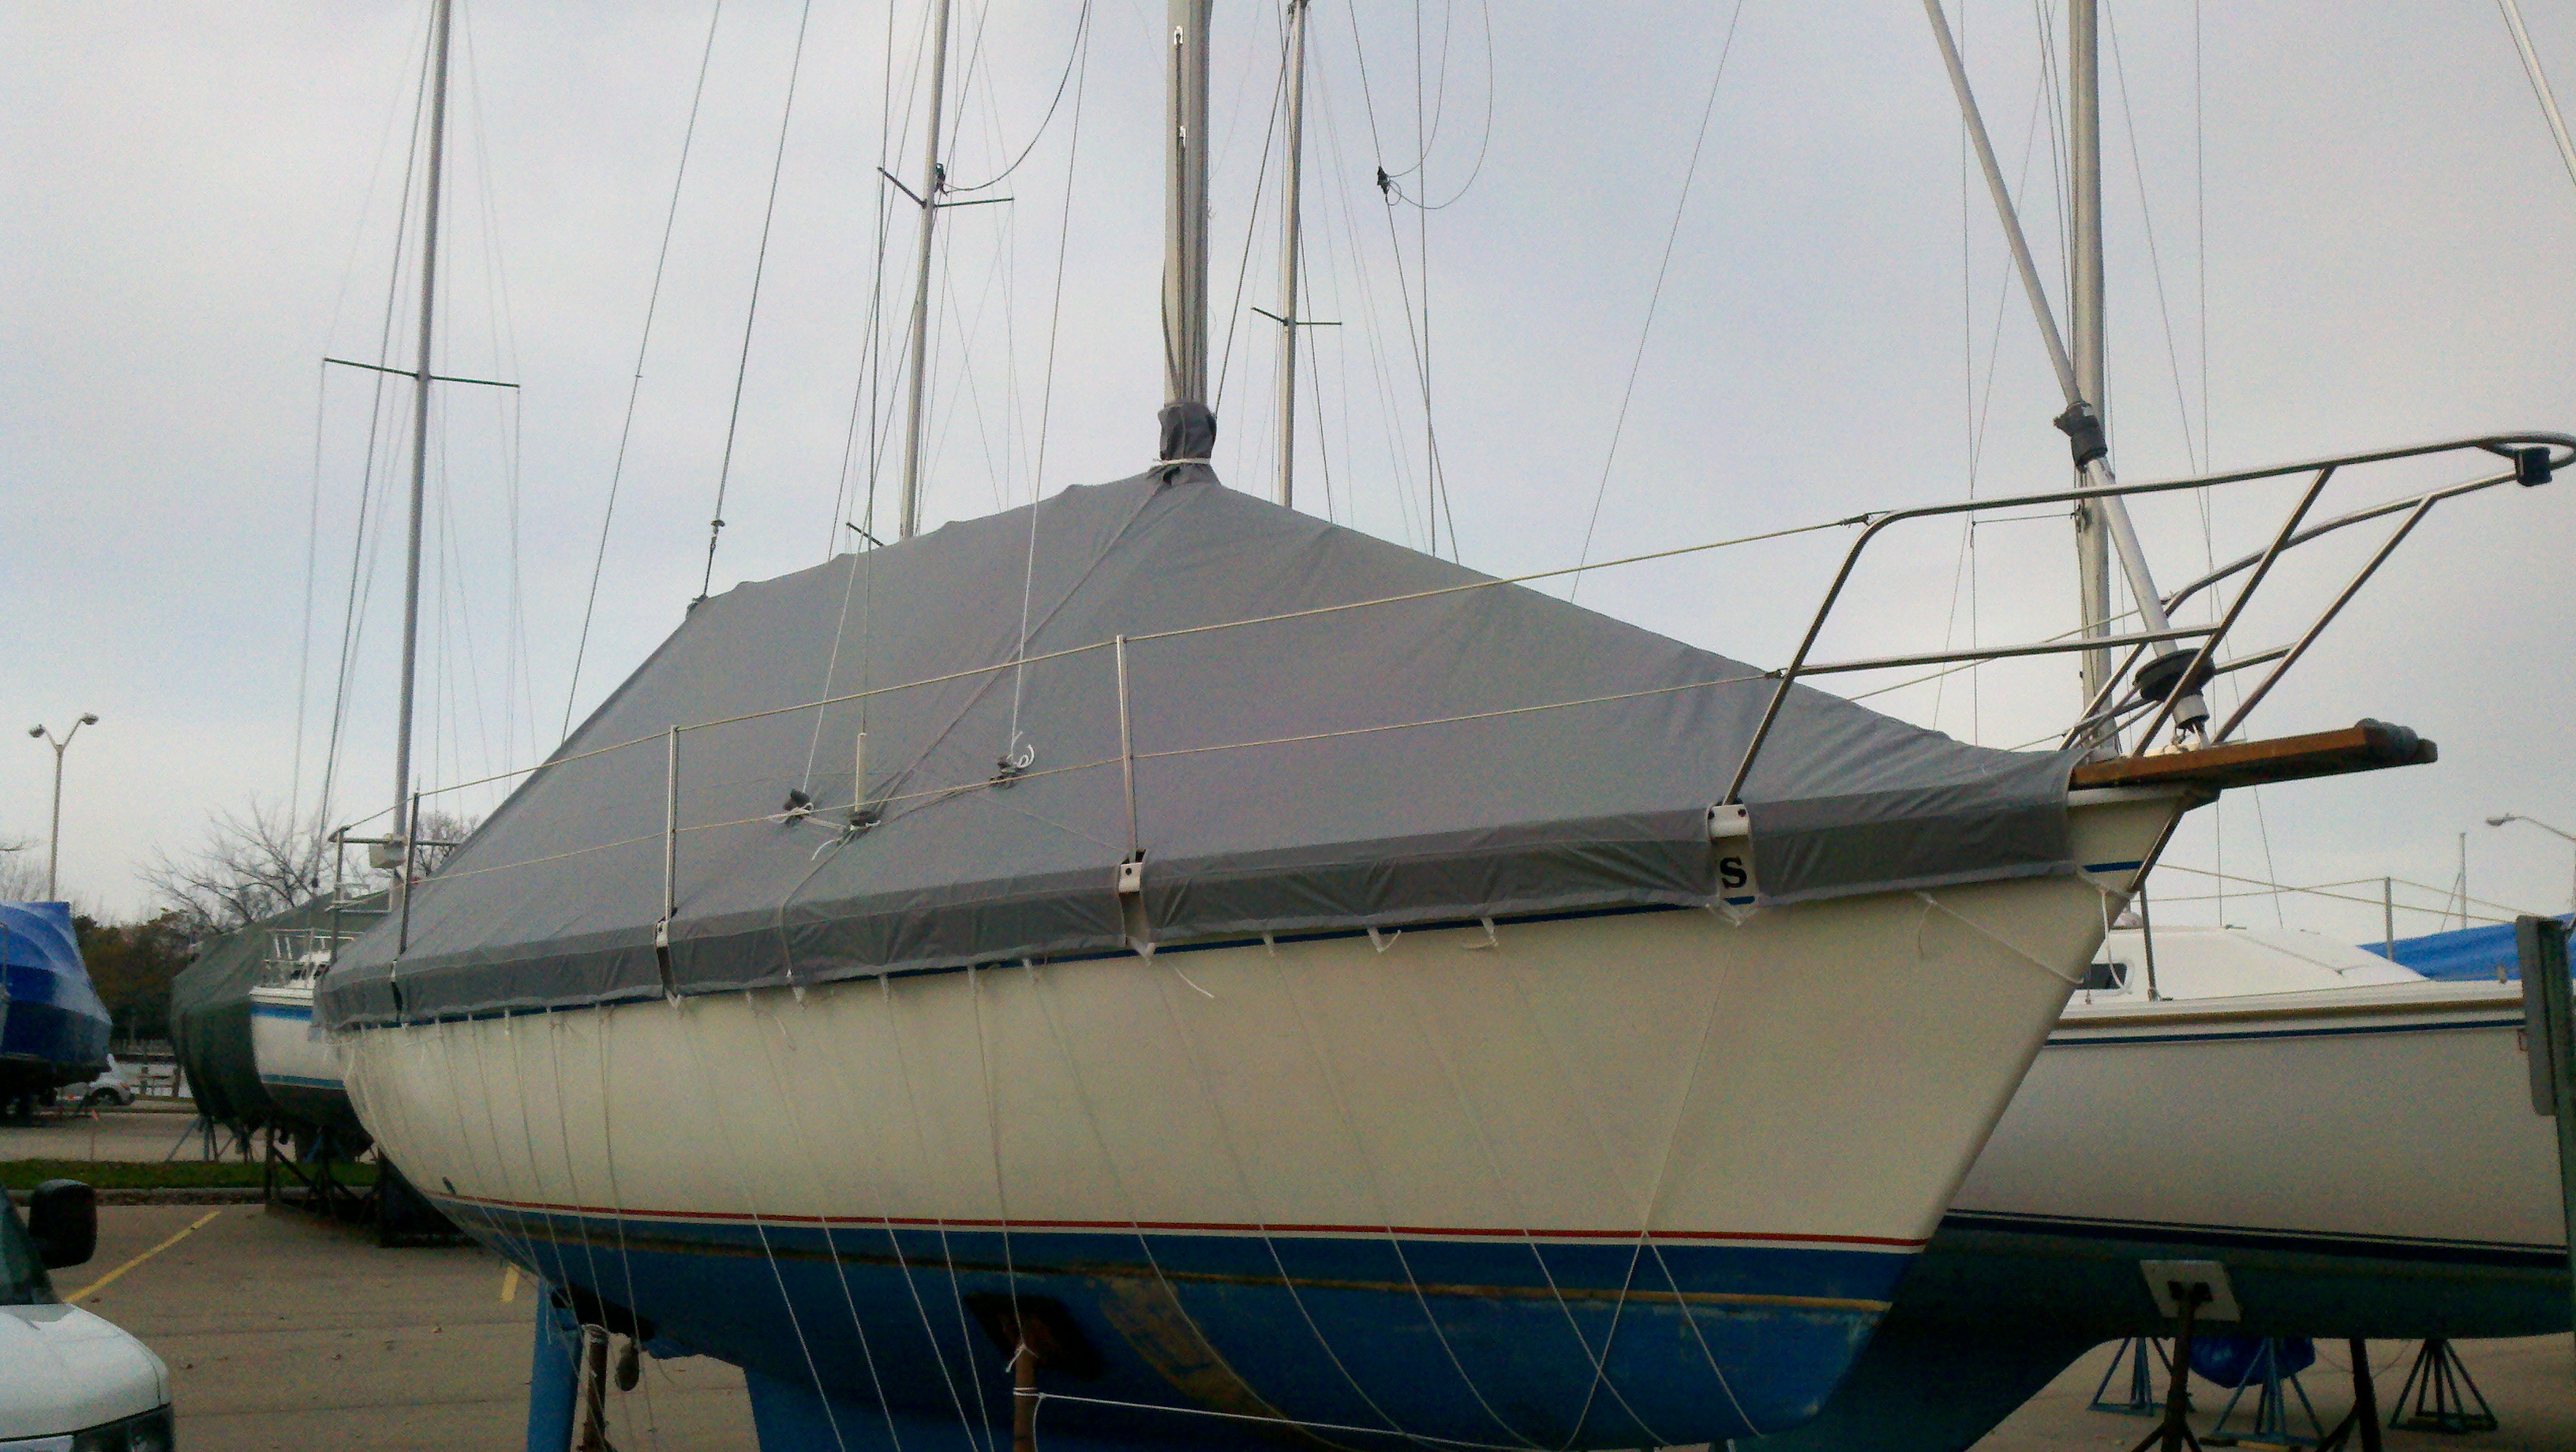 Custom Marine/Boat/Yacht Winter Cover: 2 piece sail boat winter cover over the boom with cutouts